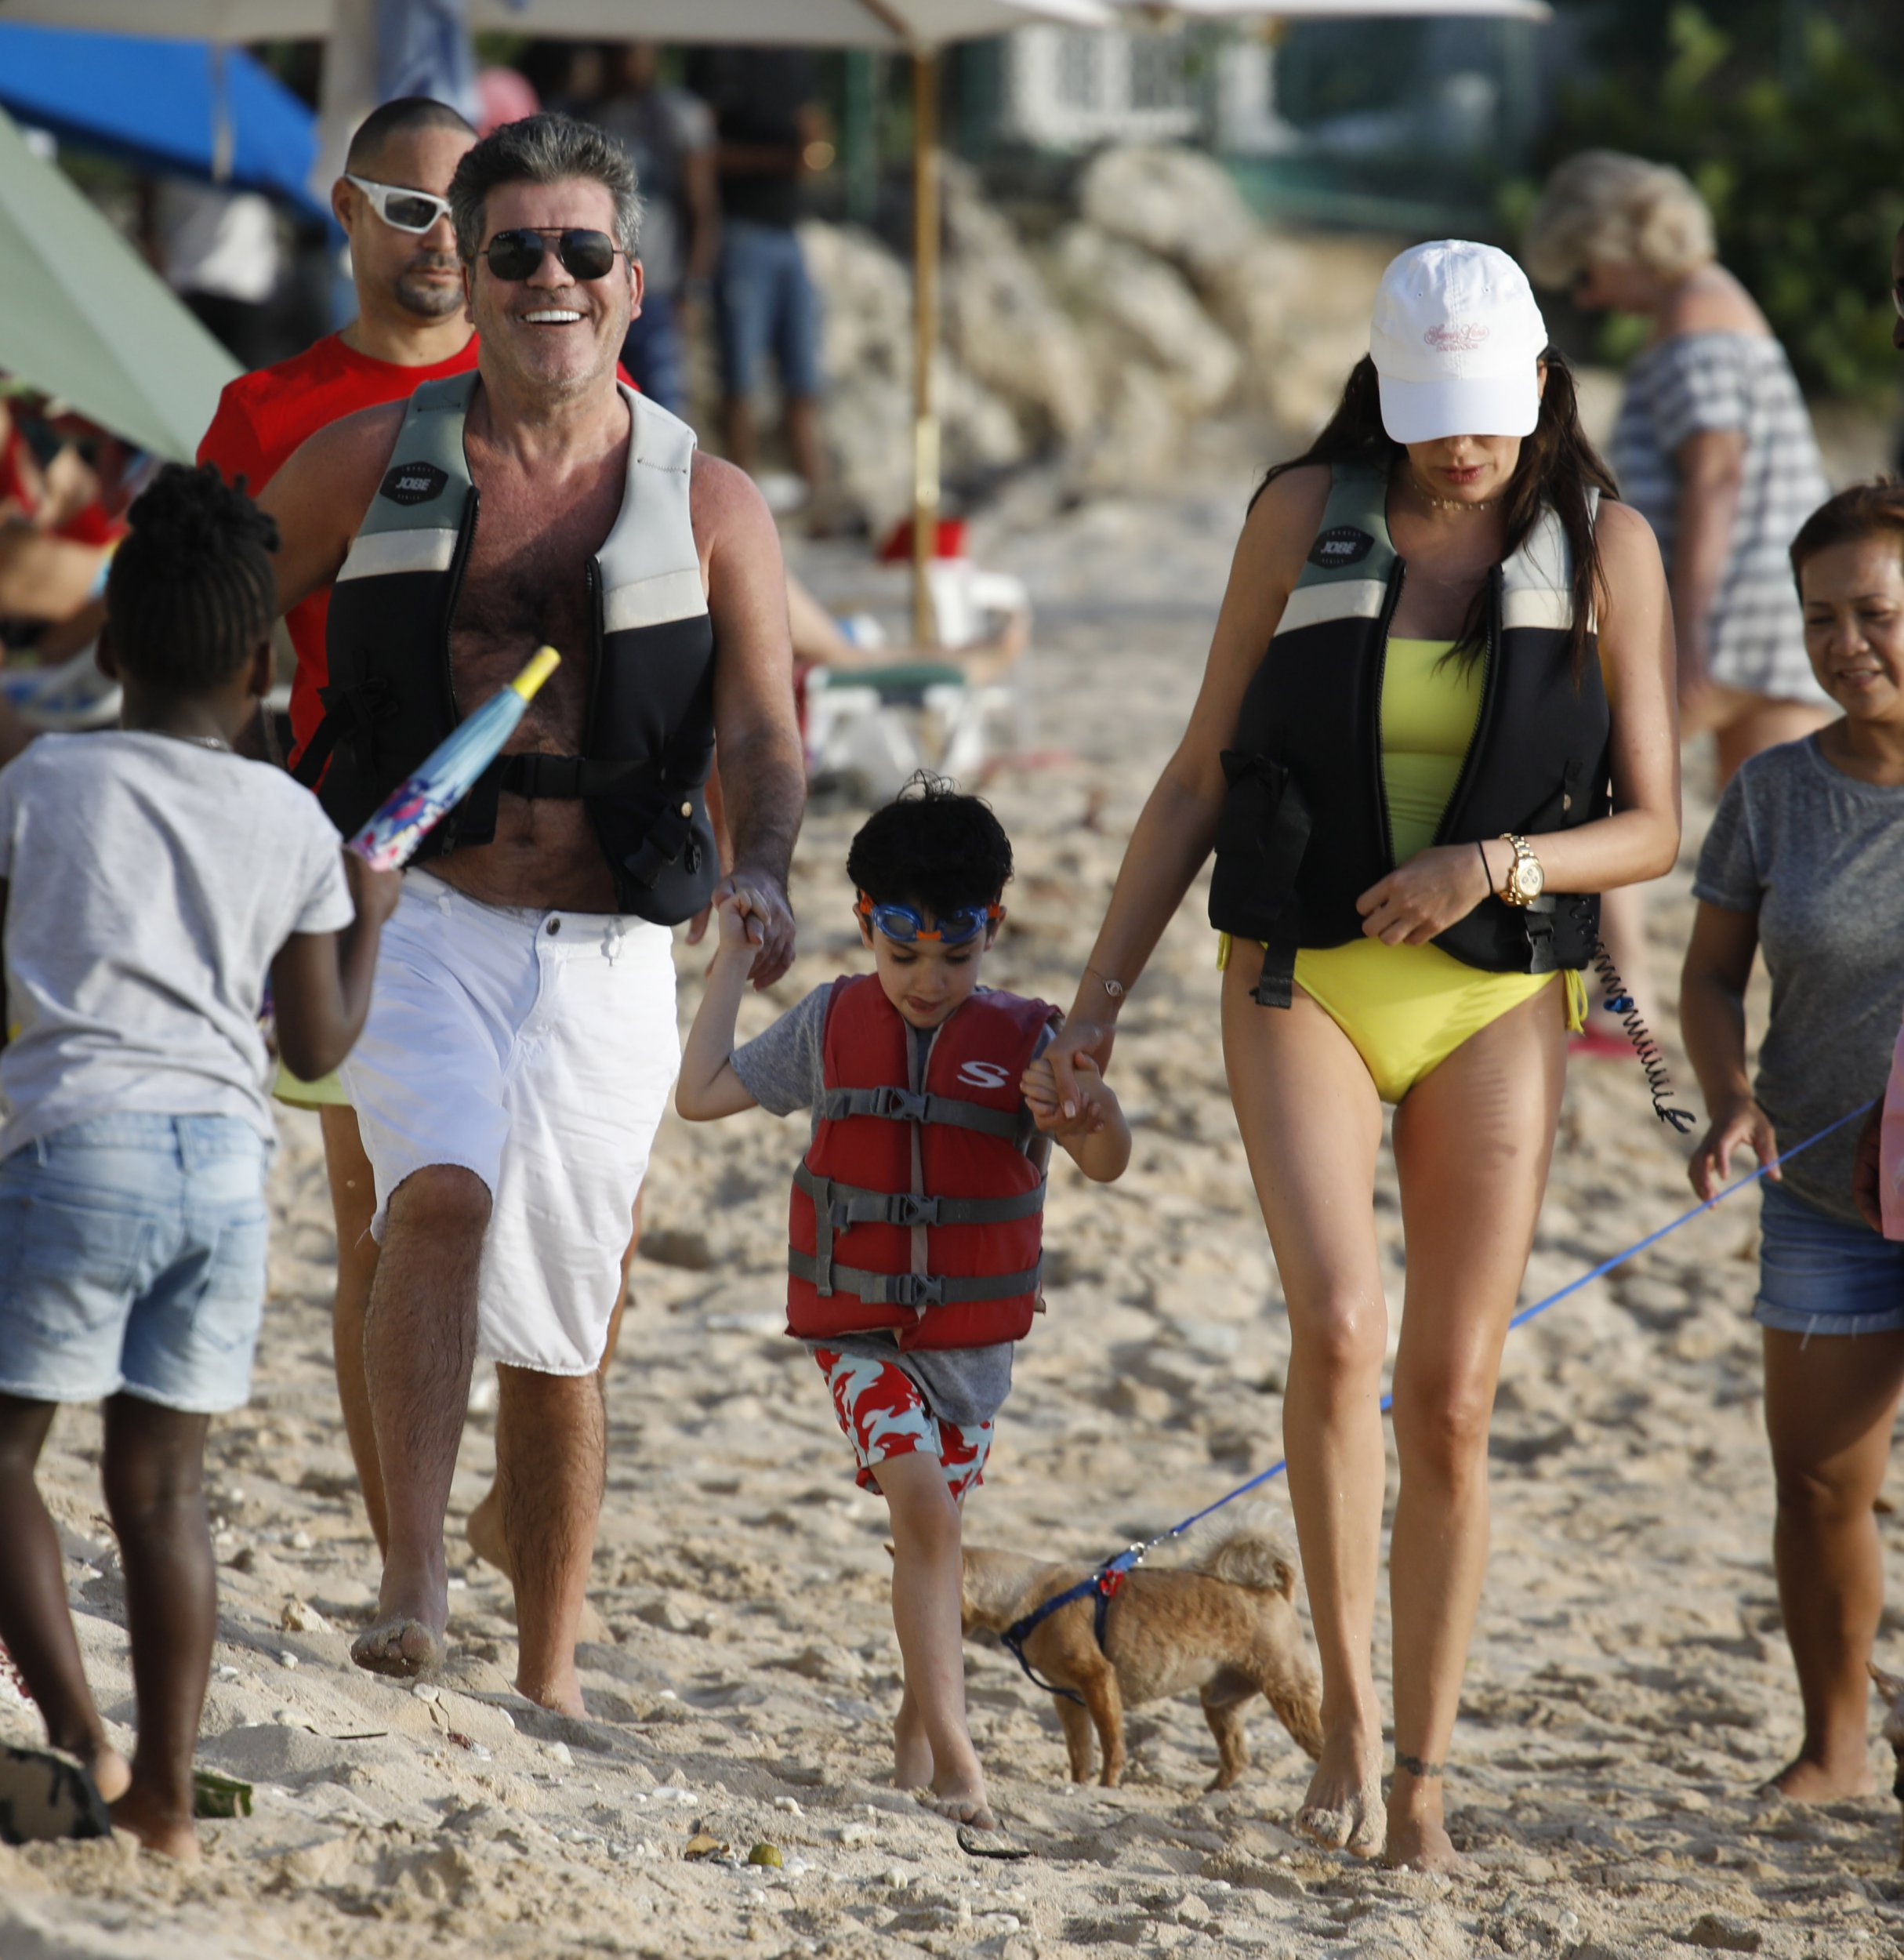 Simon Cowel And Son Eric Return Back To The Beach With Mum Lauren Silverman After There Jet Ski Ride In Barbados Pictured: Simon Cowell Eric And Lauren Silverman Ref: SPL5050197 161218 NON-EXCLUSIVE Picture by: Ralph / SplashNews.com Splash News and Pictures Los Angeles: 310-821-2666 New York: 212-619-2666 London: 0207 644 7656 Milan: 02 4399 8577 photodesk@splashnews.com World Rights,